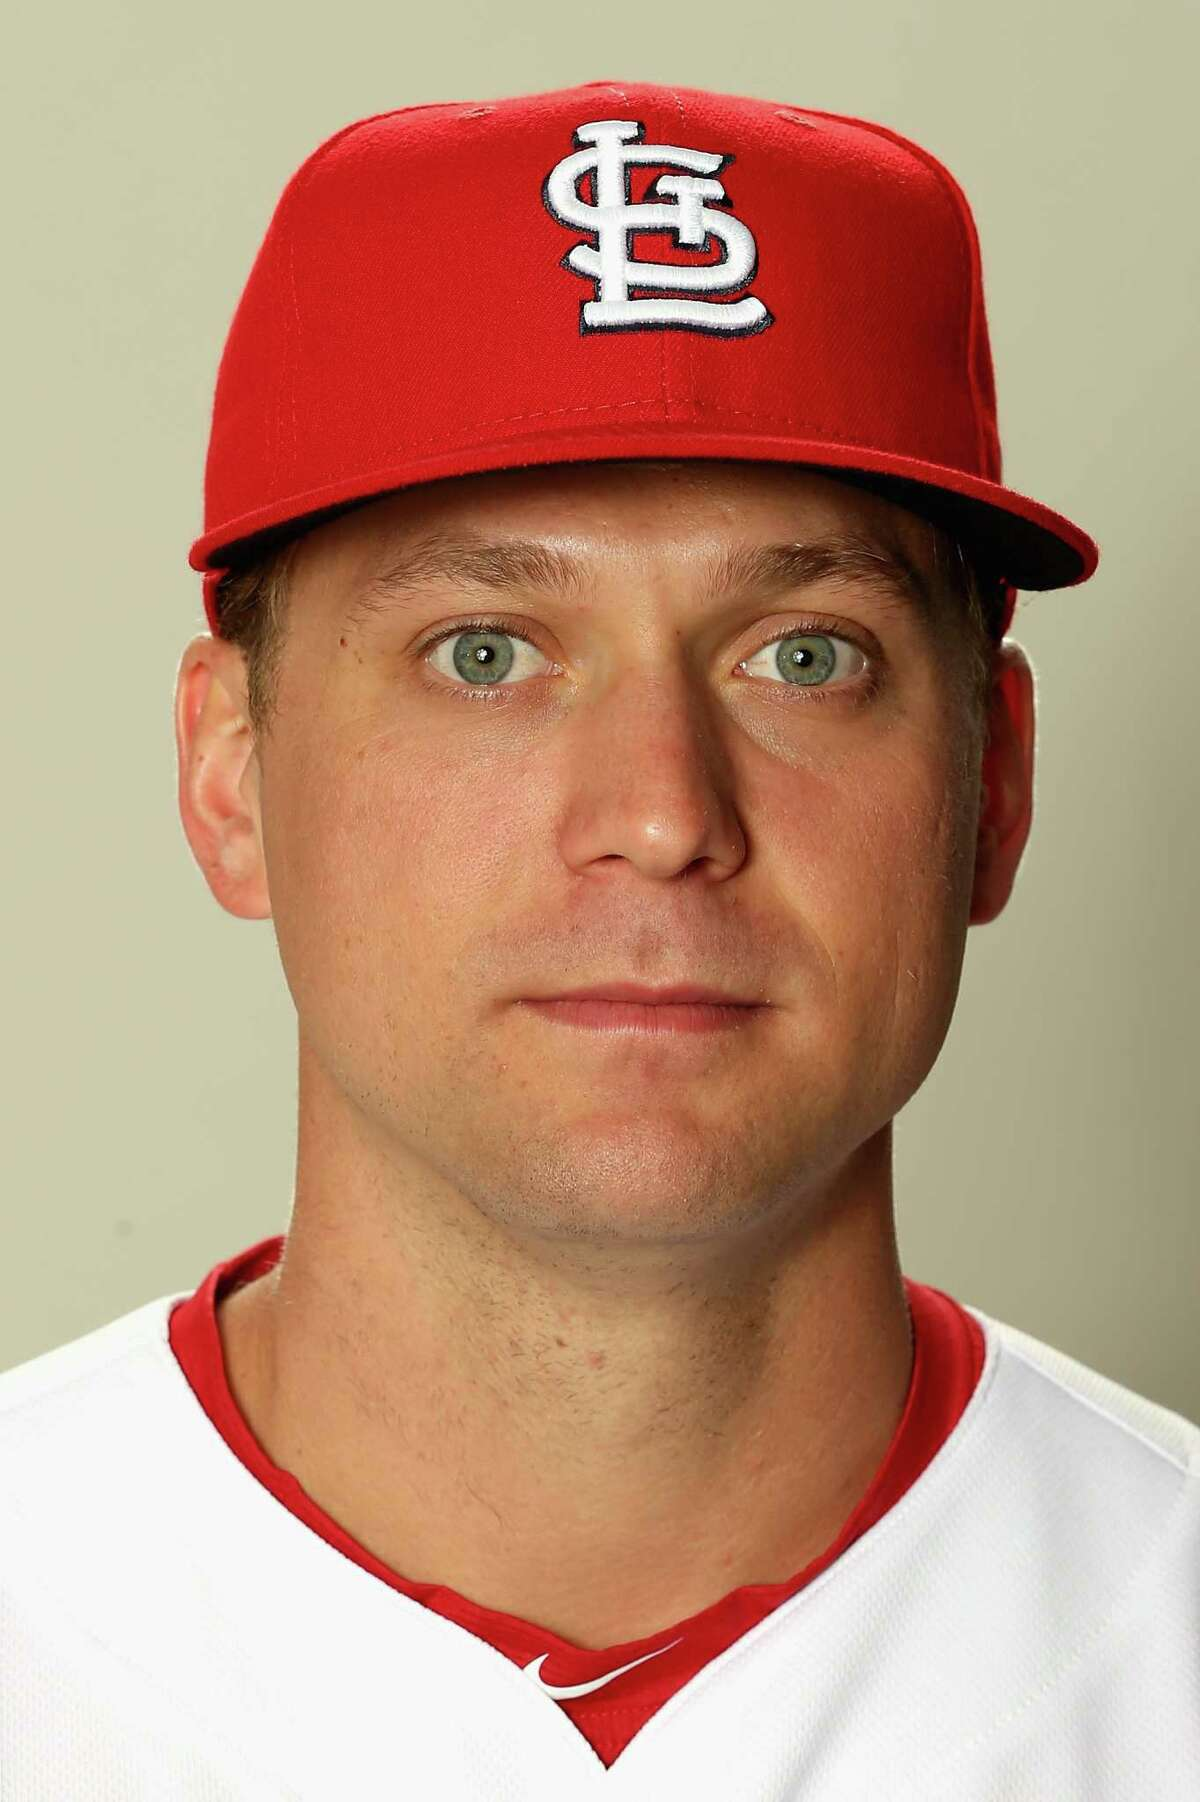 JUPITER, FL - FEBRUARY 20: Trevor Rosenthal #44 poses for a portrait during St Louis Cardinals Photo Day at Roger Dean Stadium on February 20, 2017 in Jupiter, Florida. (Photo by Matthew Stockman/Getty Images) ORG XMIT: 694907509